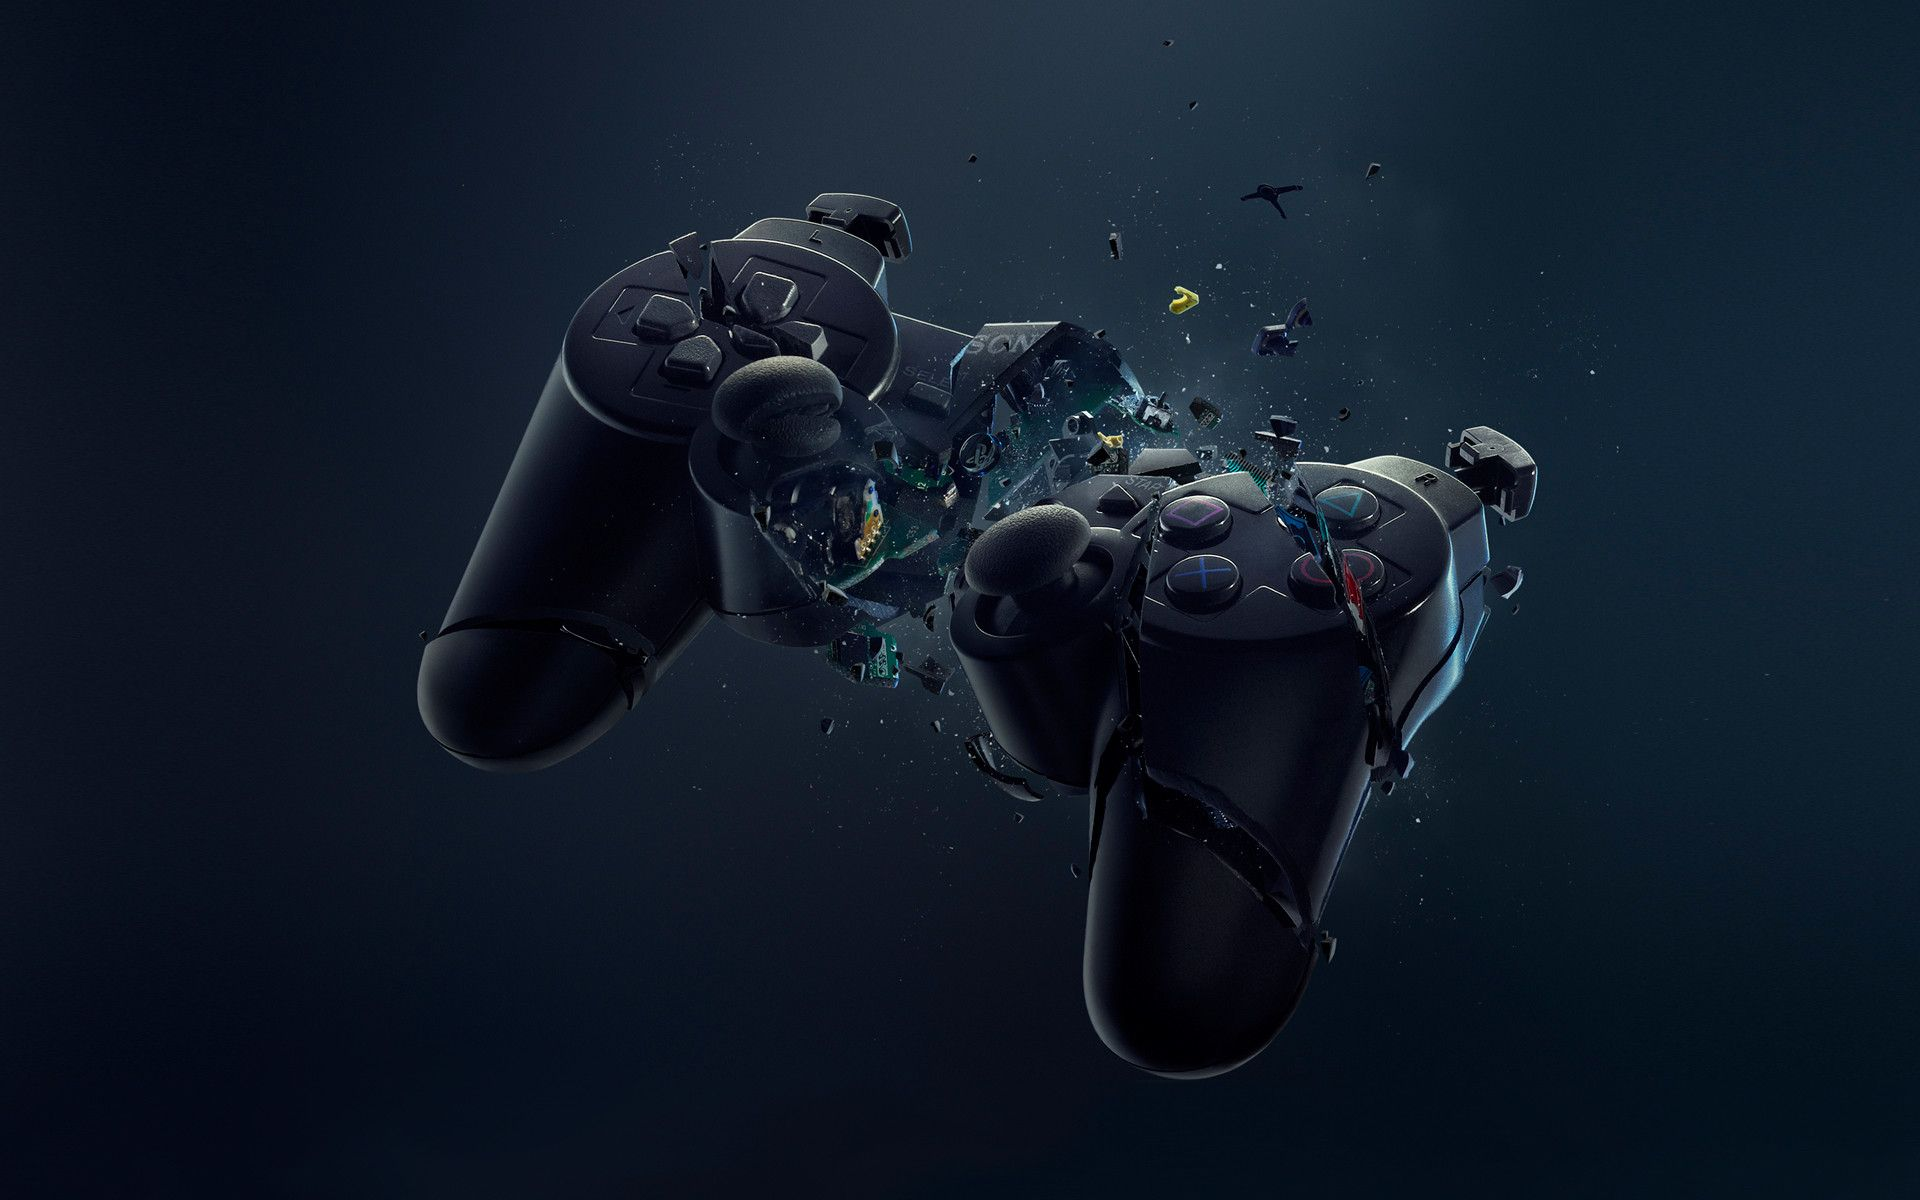 Ps3 Wallpapers Free